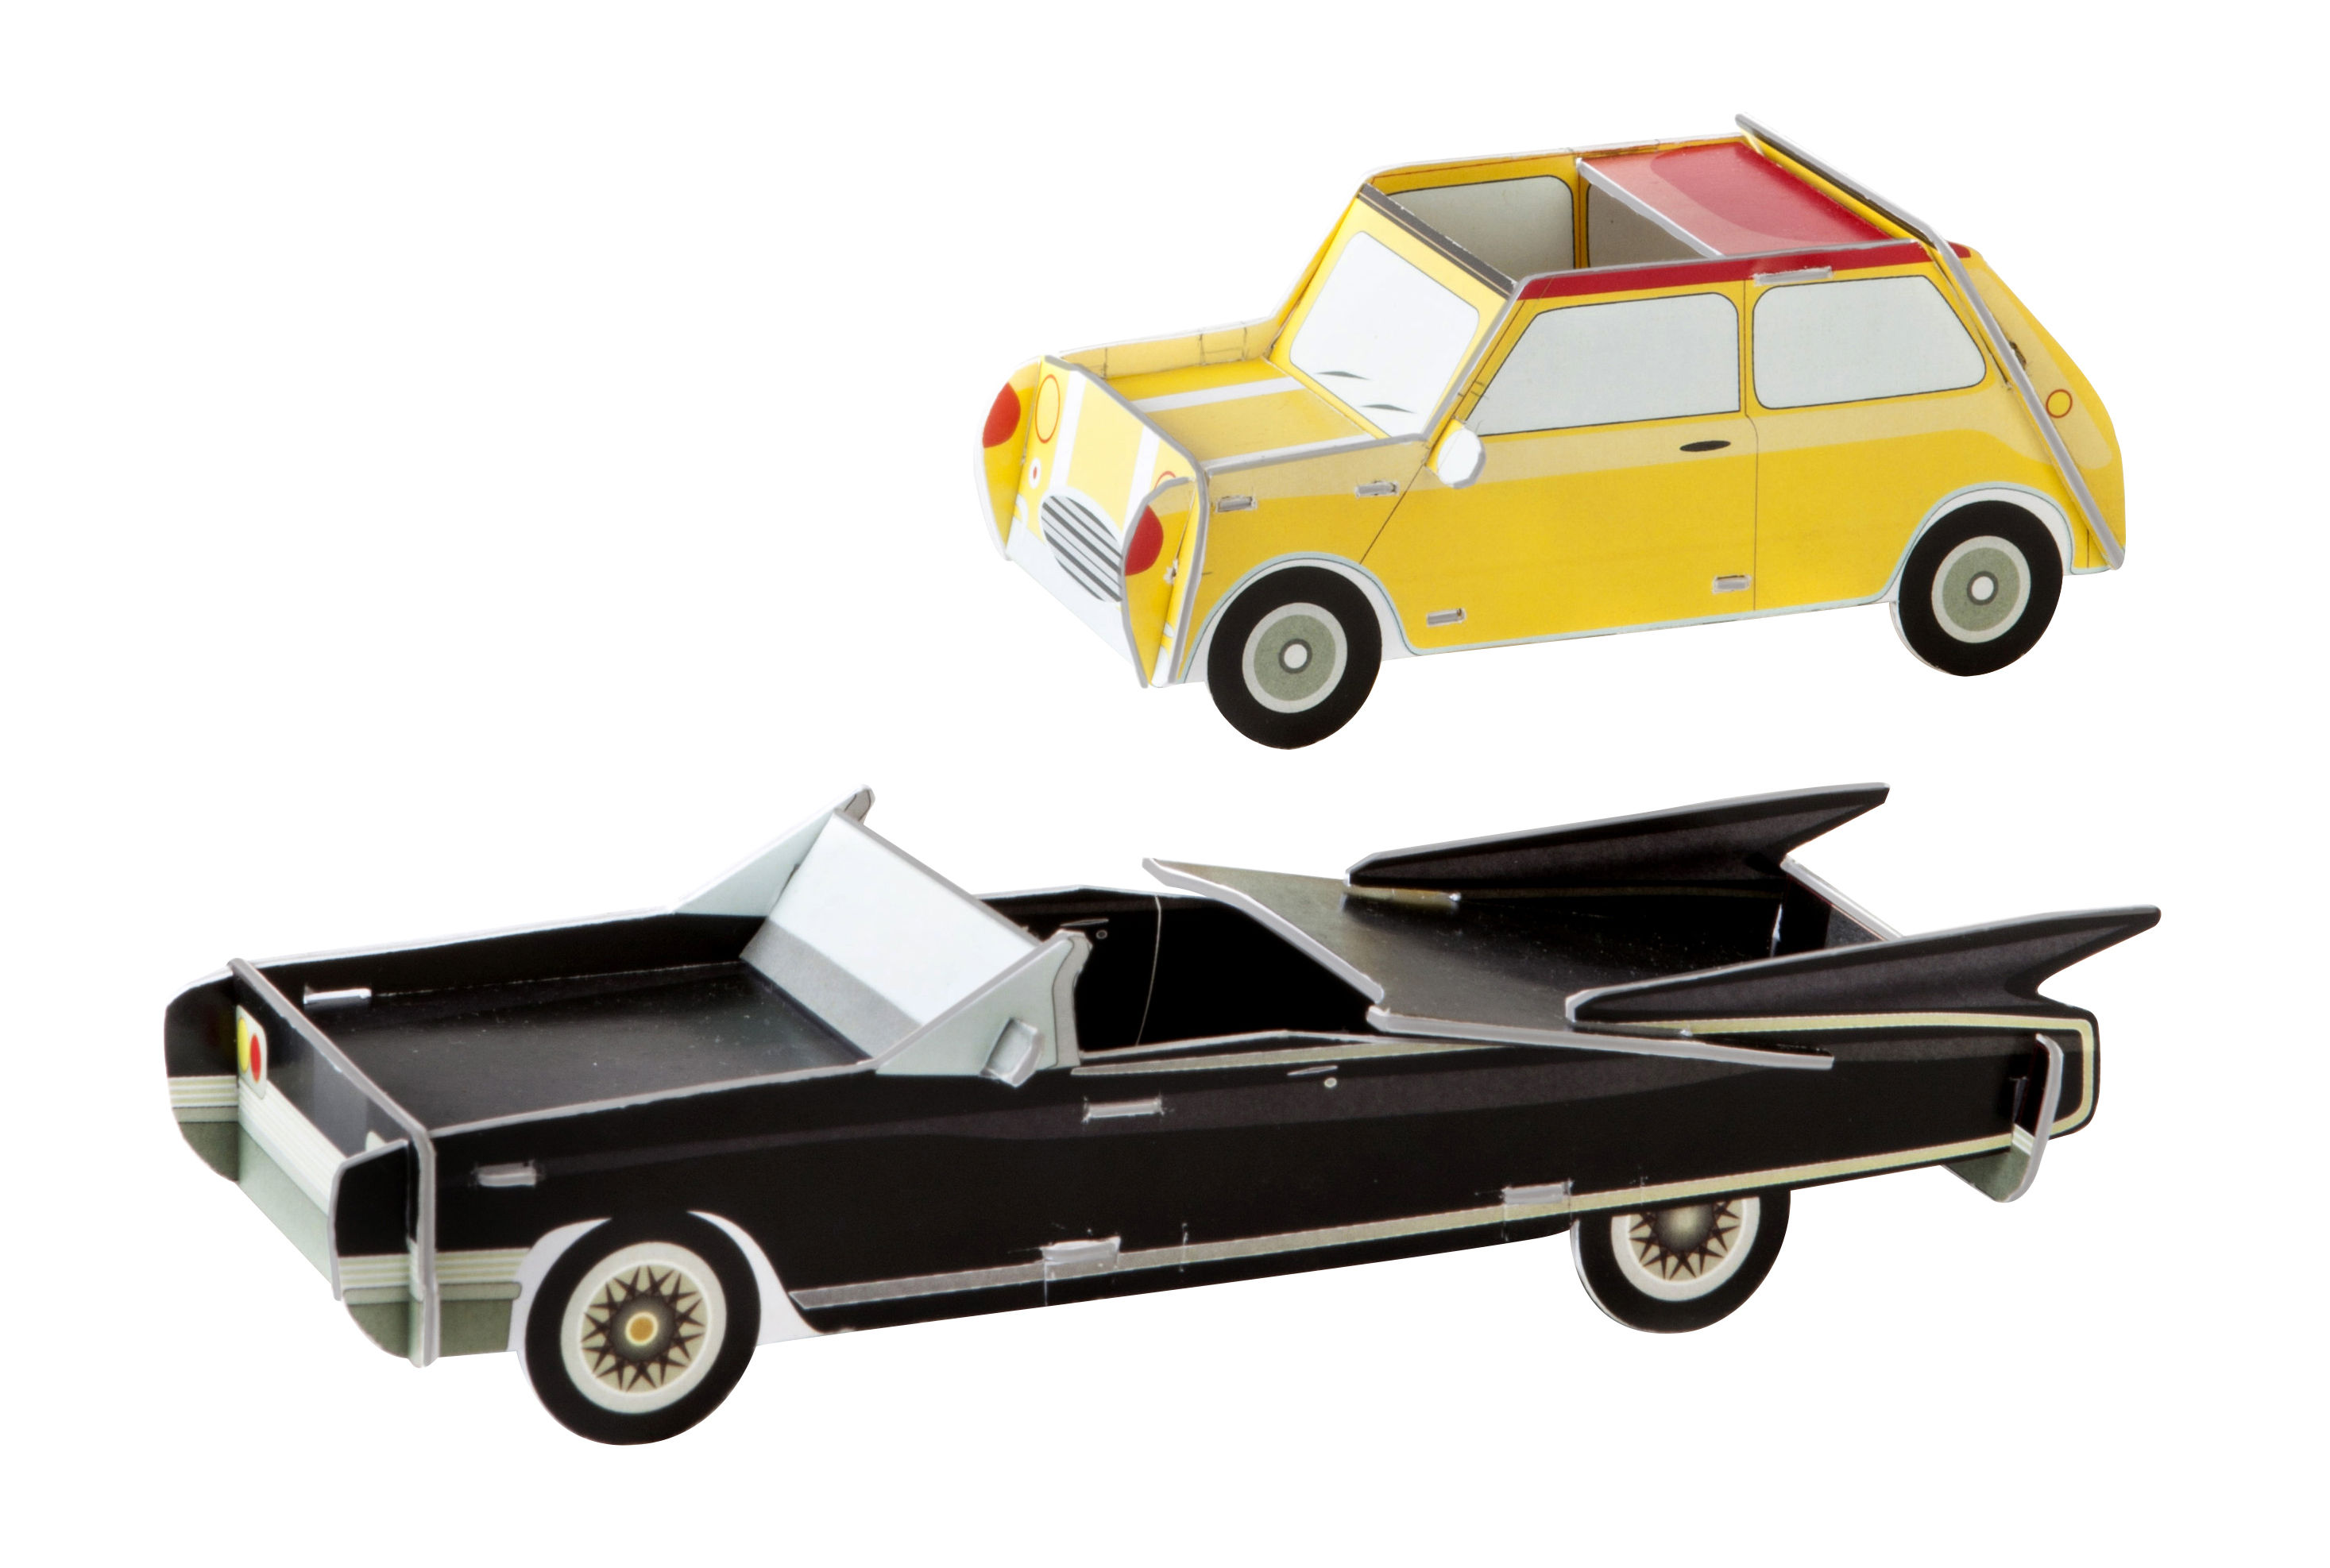 Decoration - Children's Home Accessories - Play! Figurine - Cool Cars 2 / Carboard by studio ROOF - Cars / Yellow & black - Carton recyclé